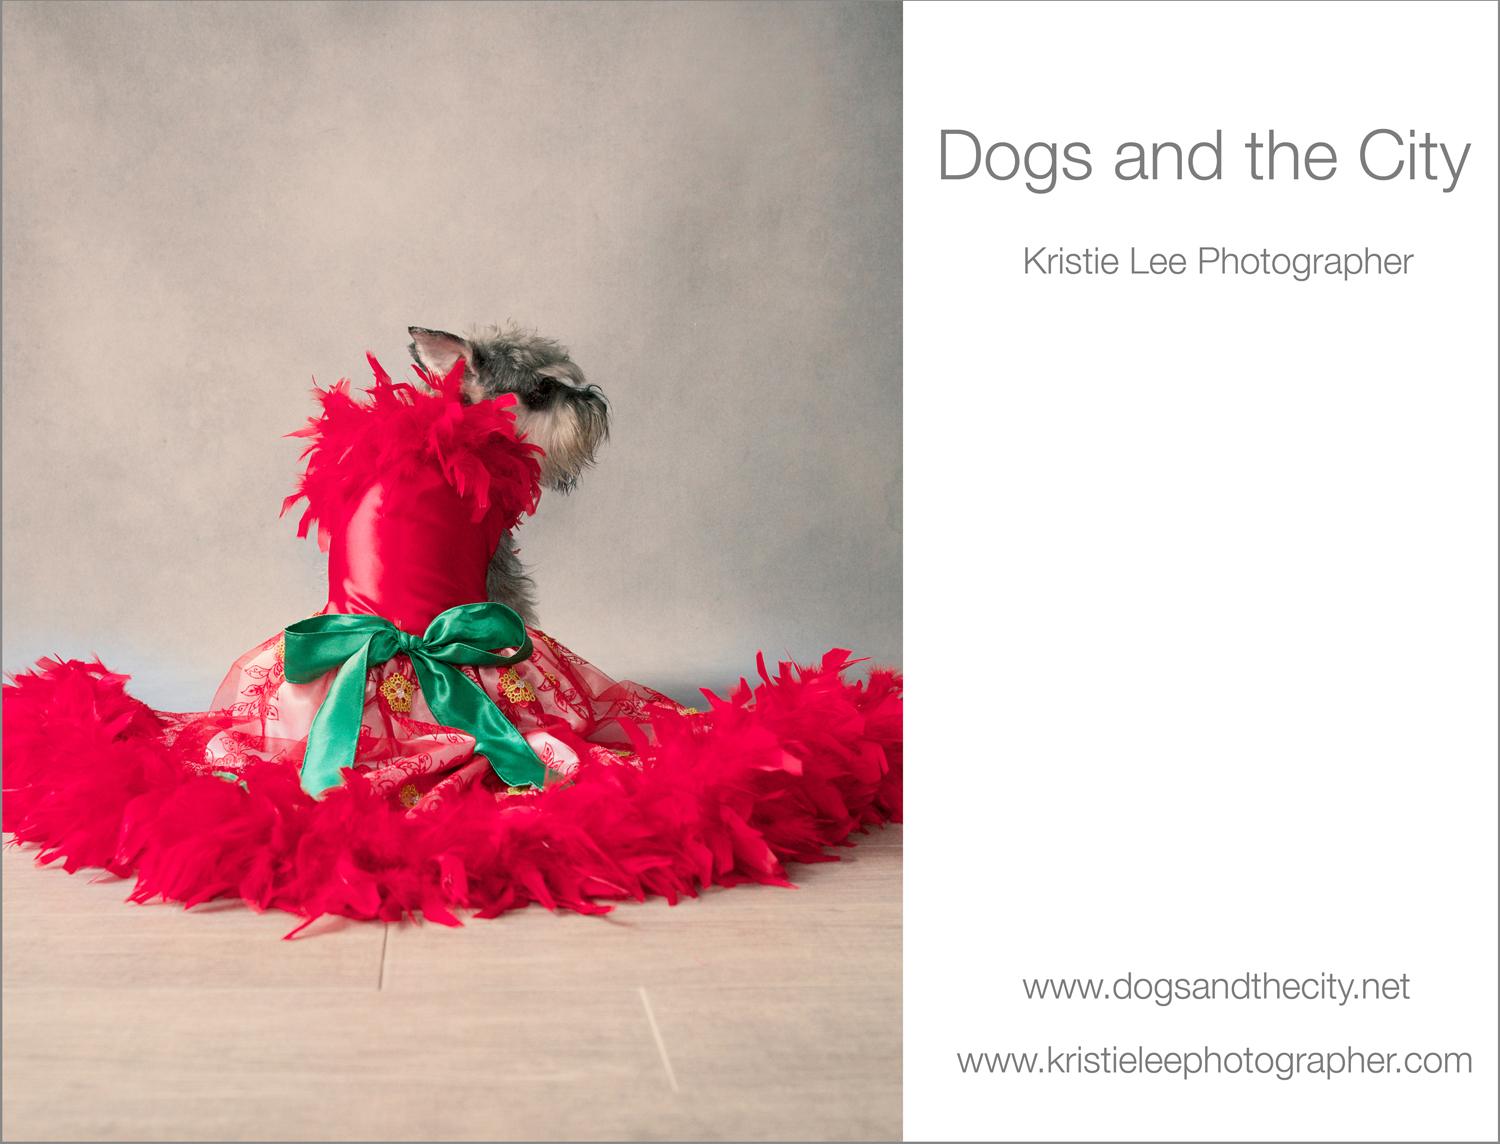 Venus dogs and the city kristie lee photographer